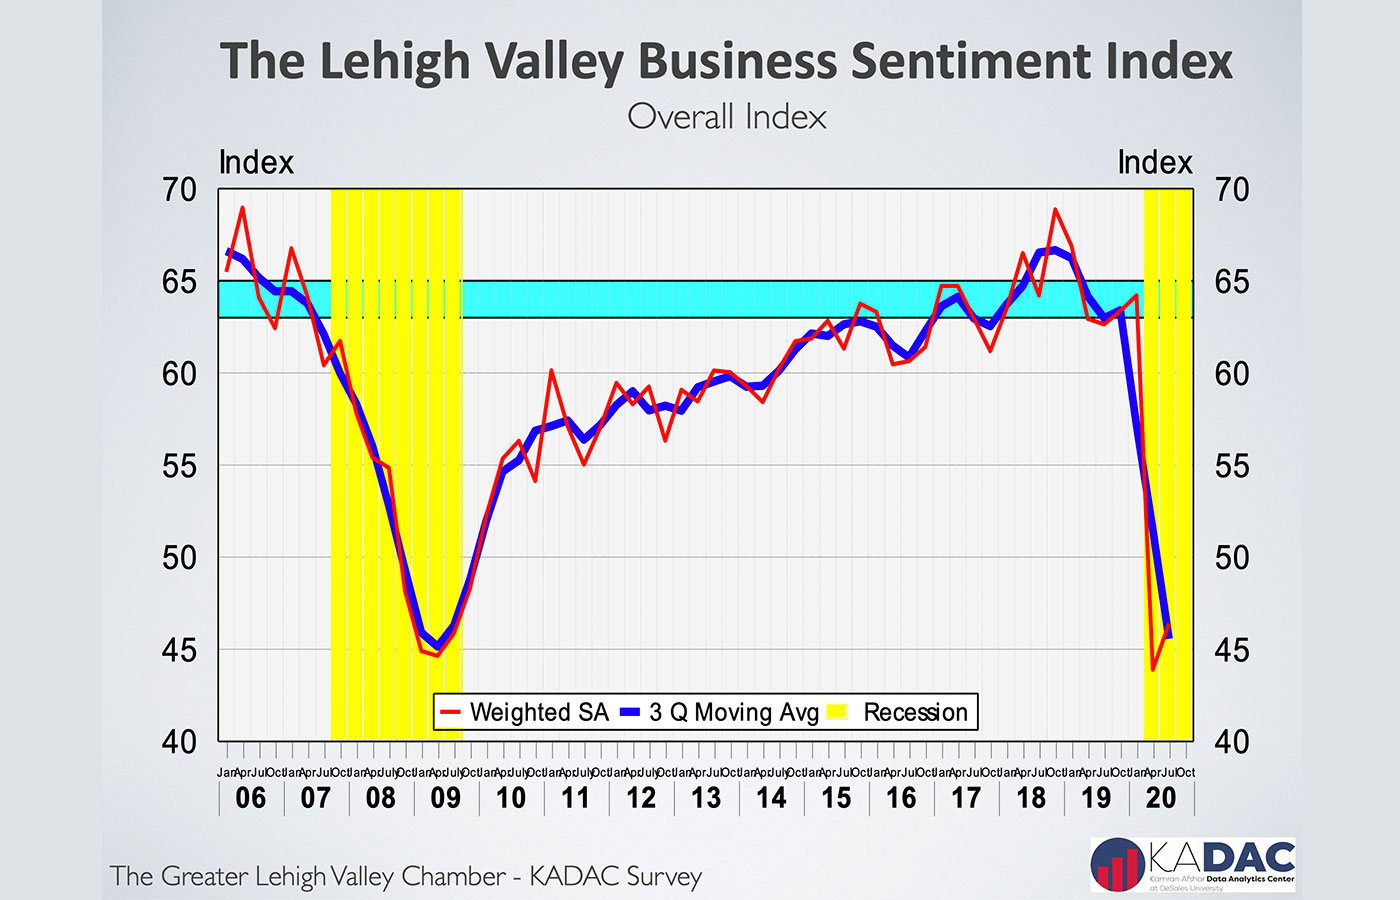 August 2020 business sentiment index chart